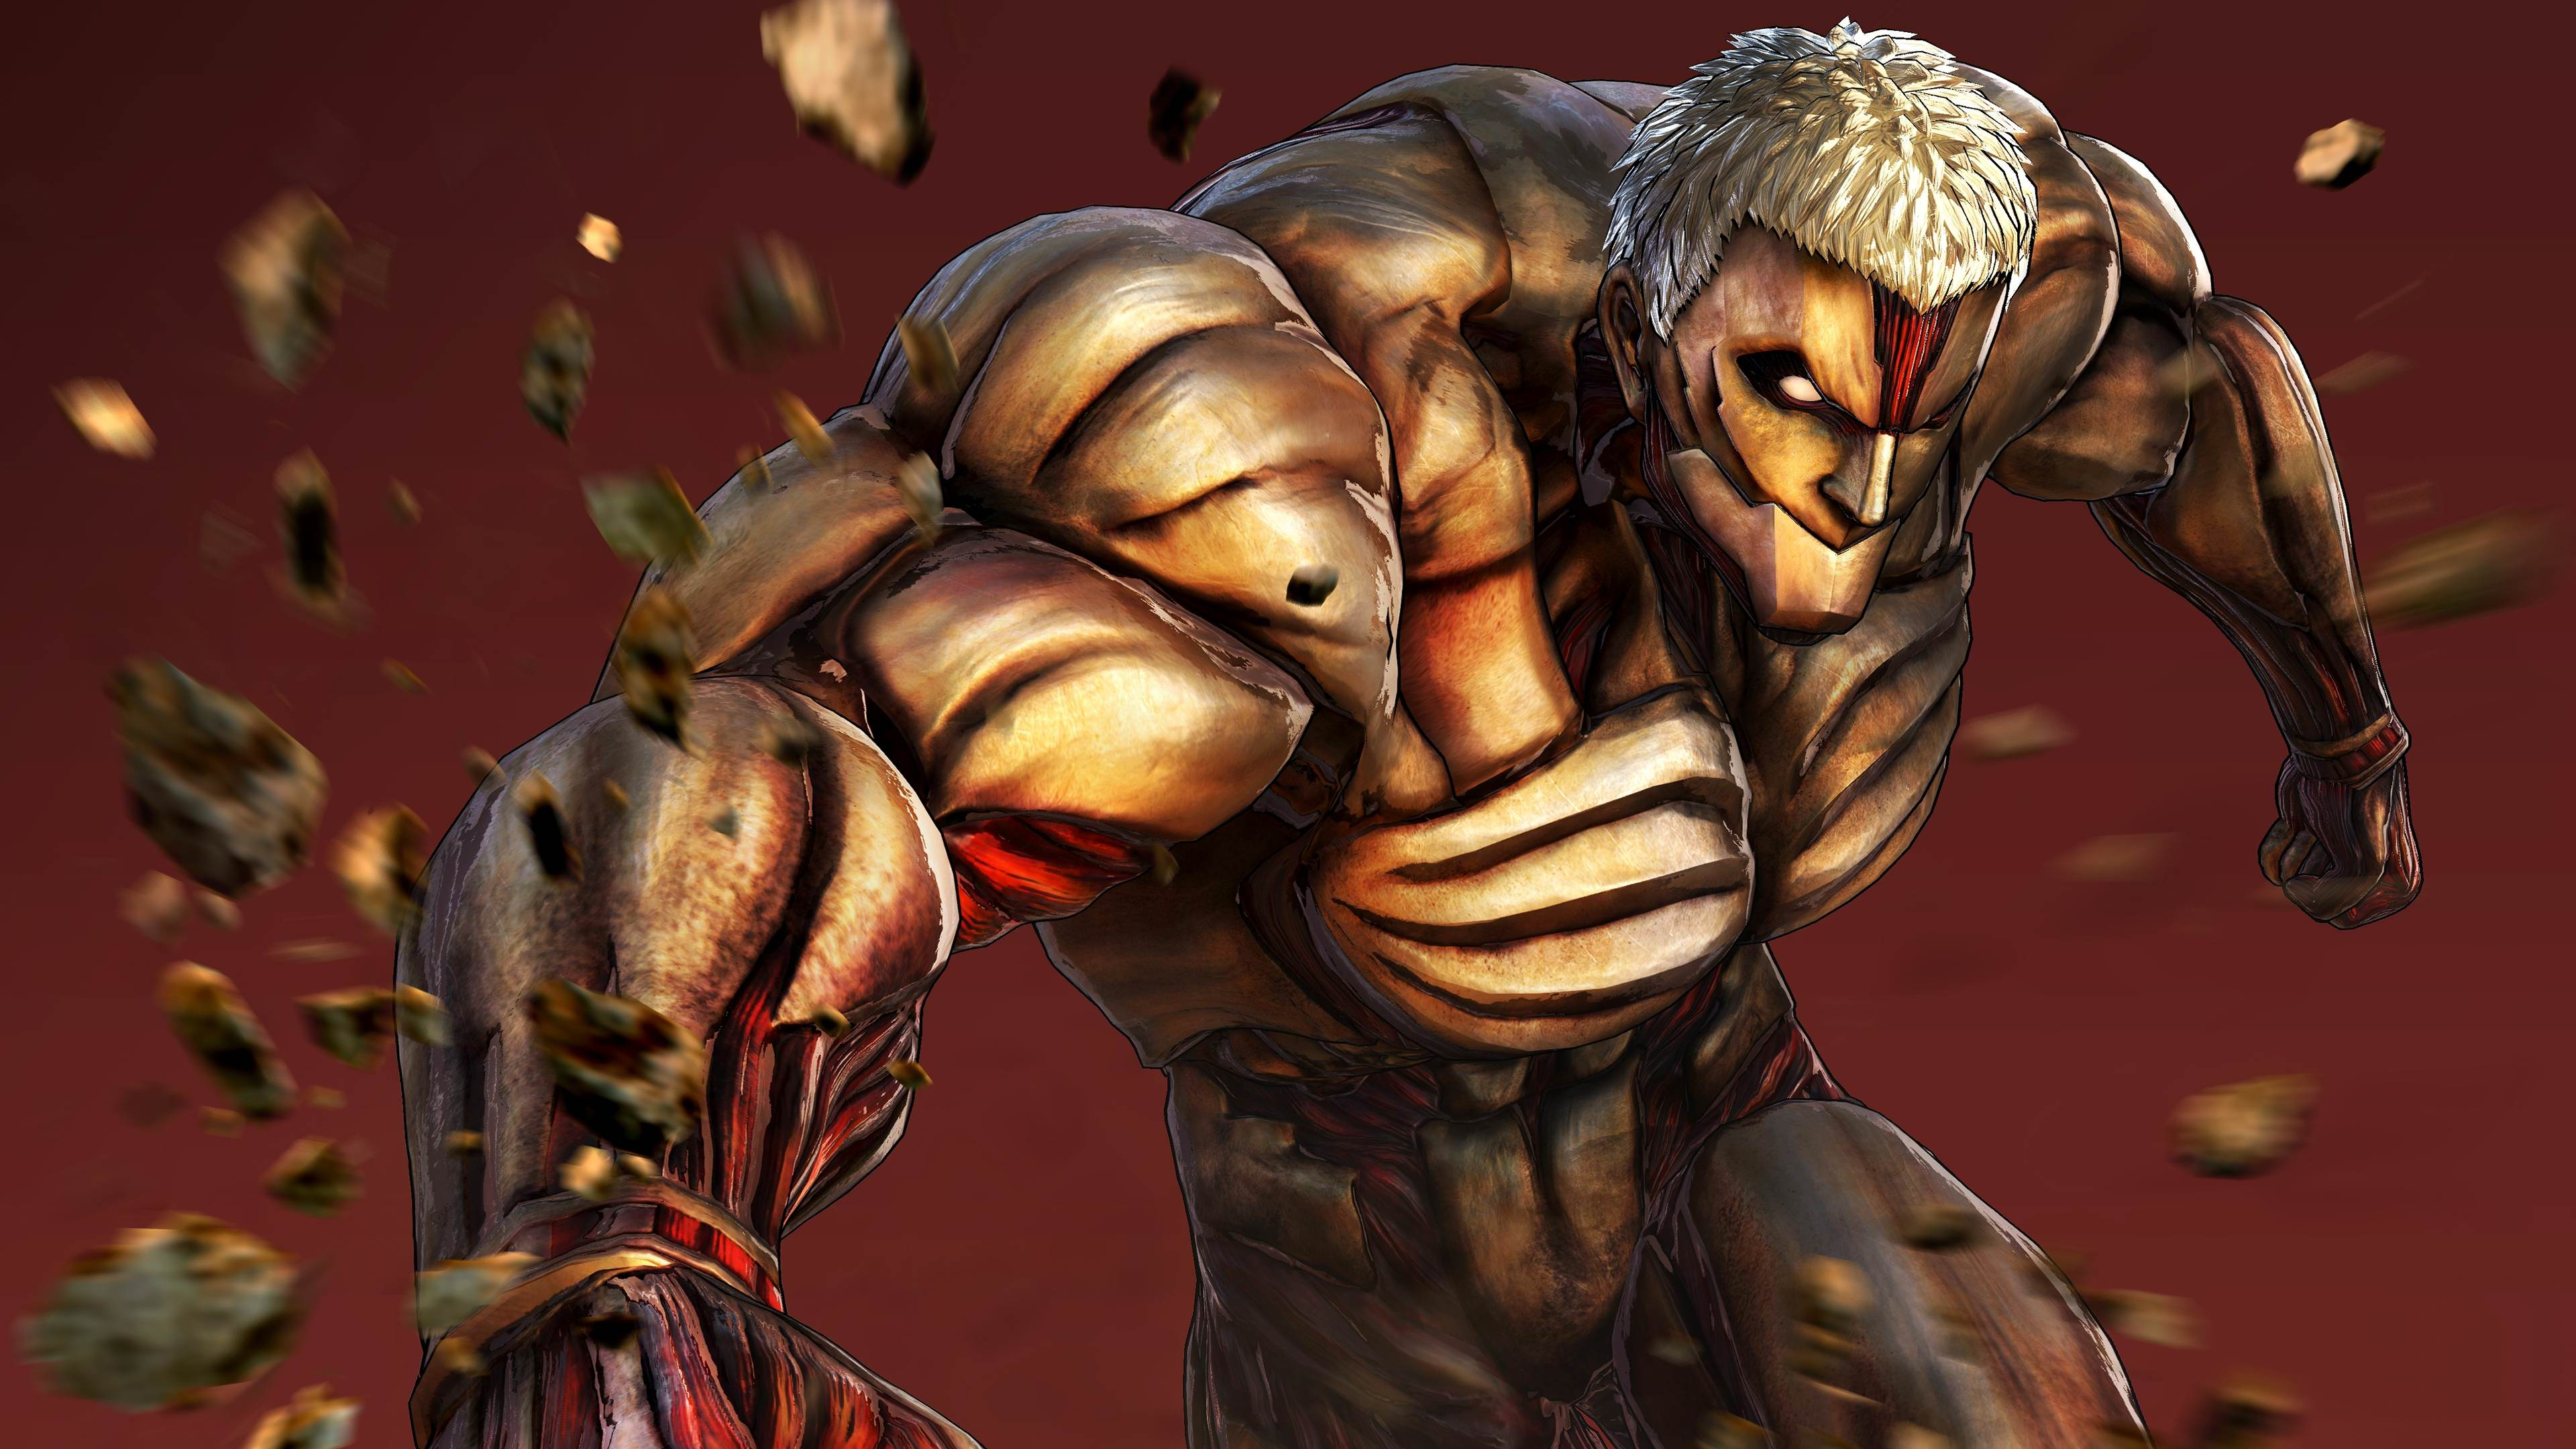 Attack On Titan Armored Titan Wallpapers Top Free Attack On